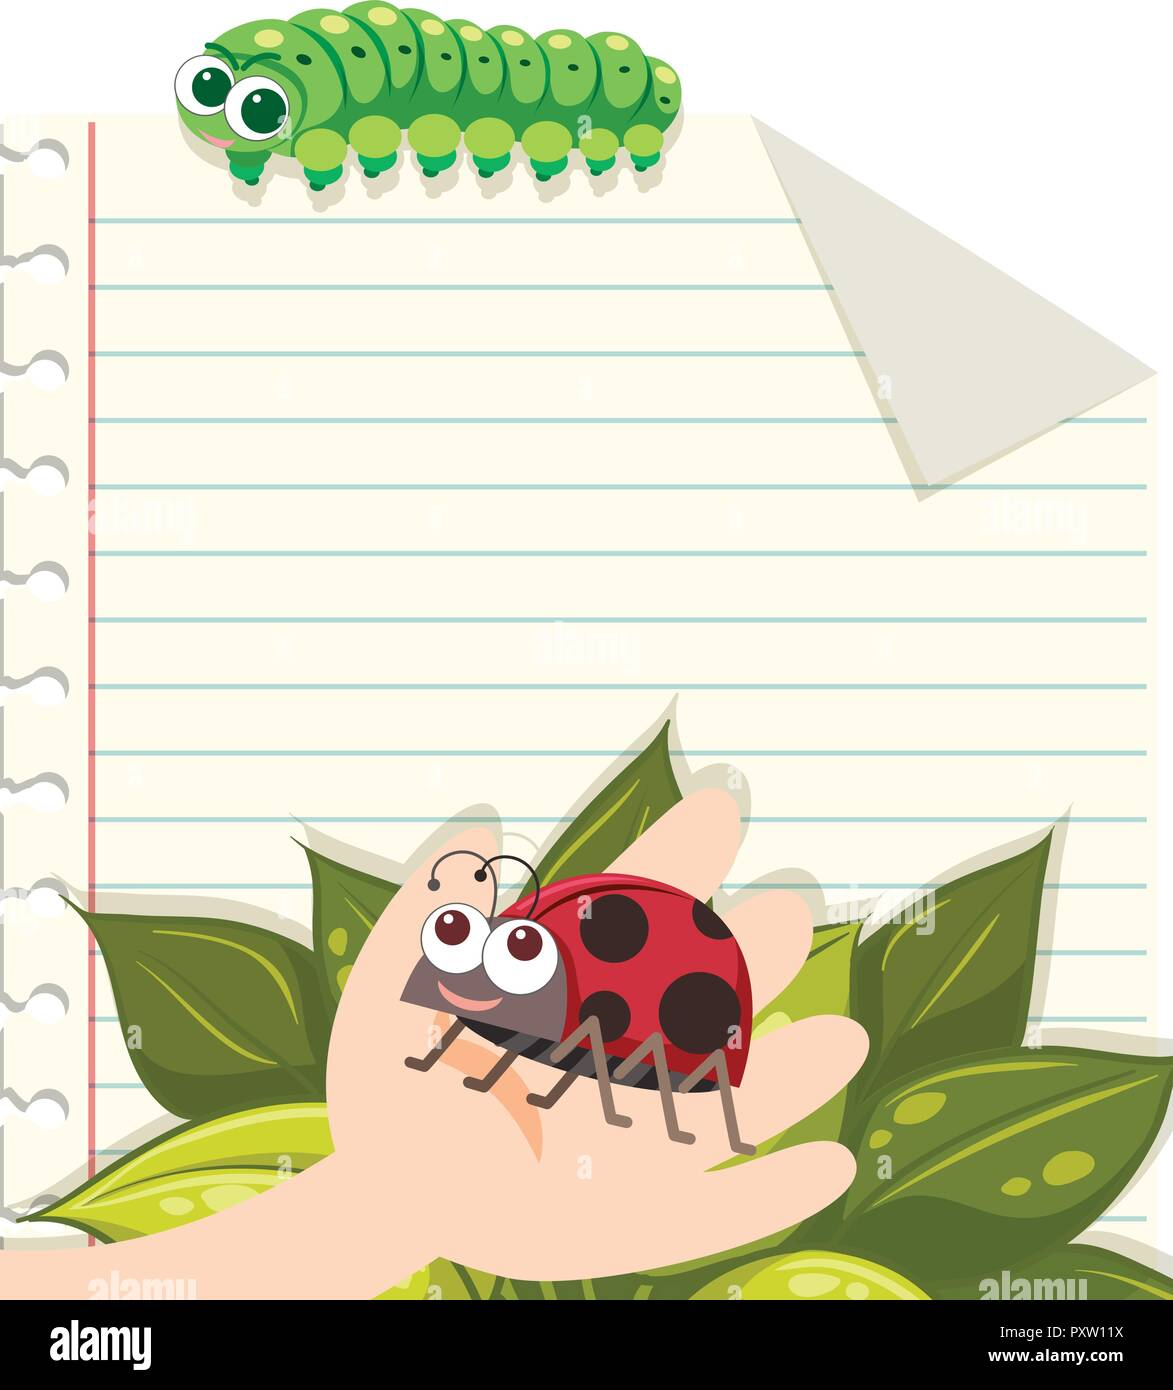 line paper template with ladybug and caterpillar illustration stock